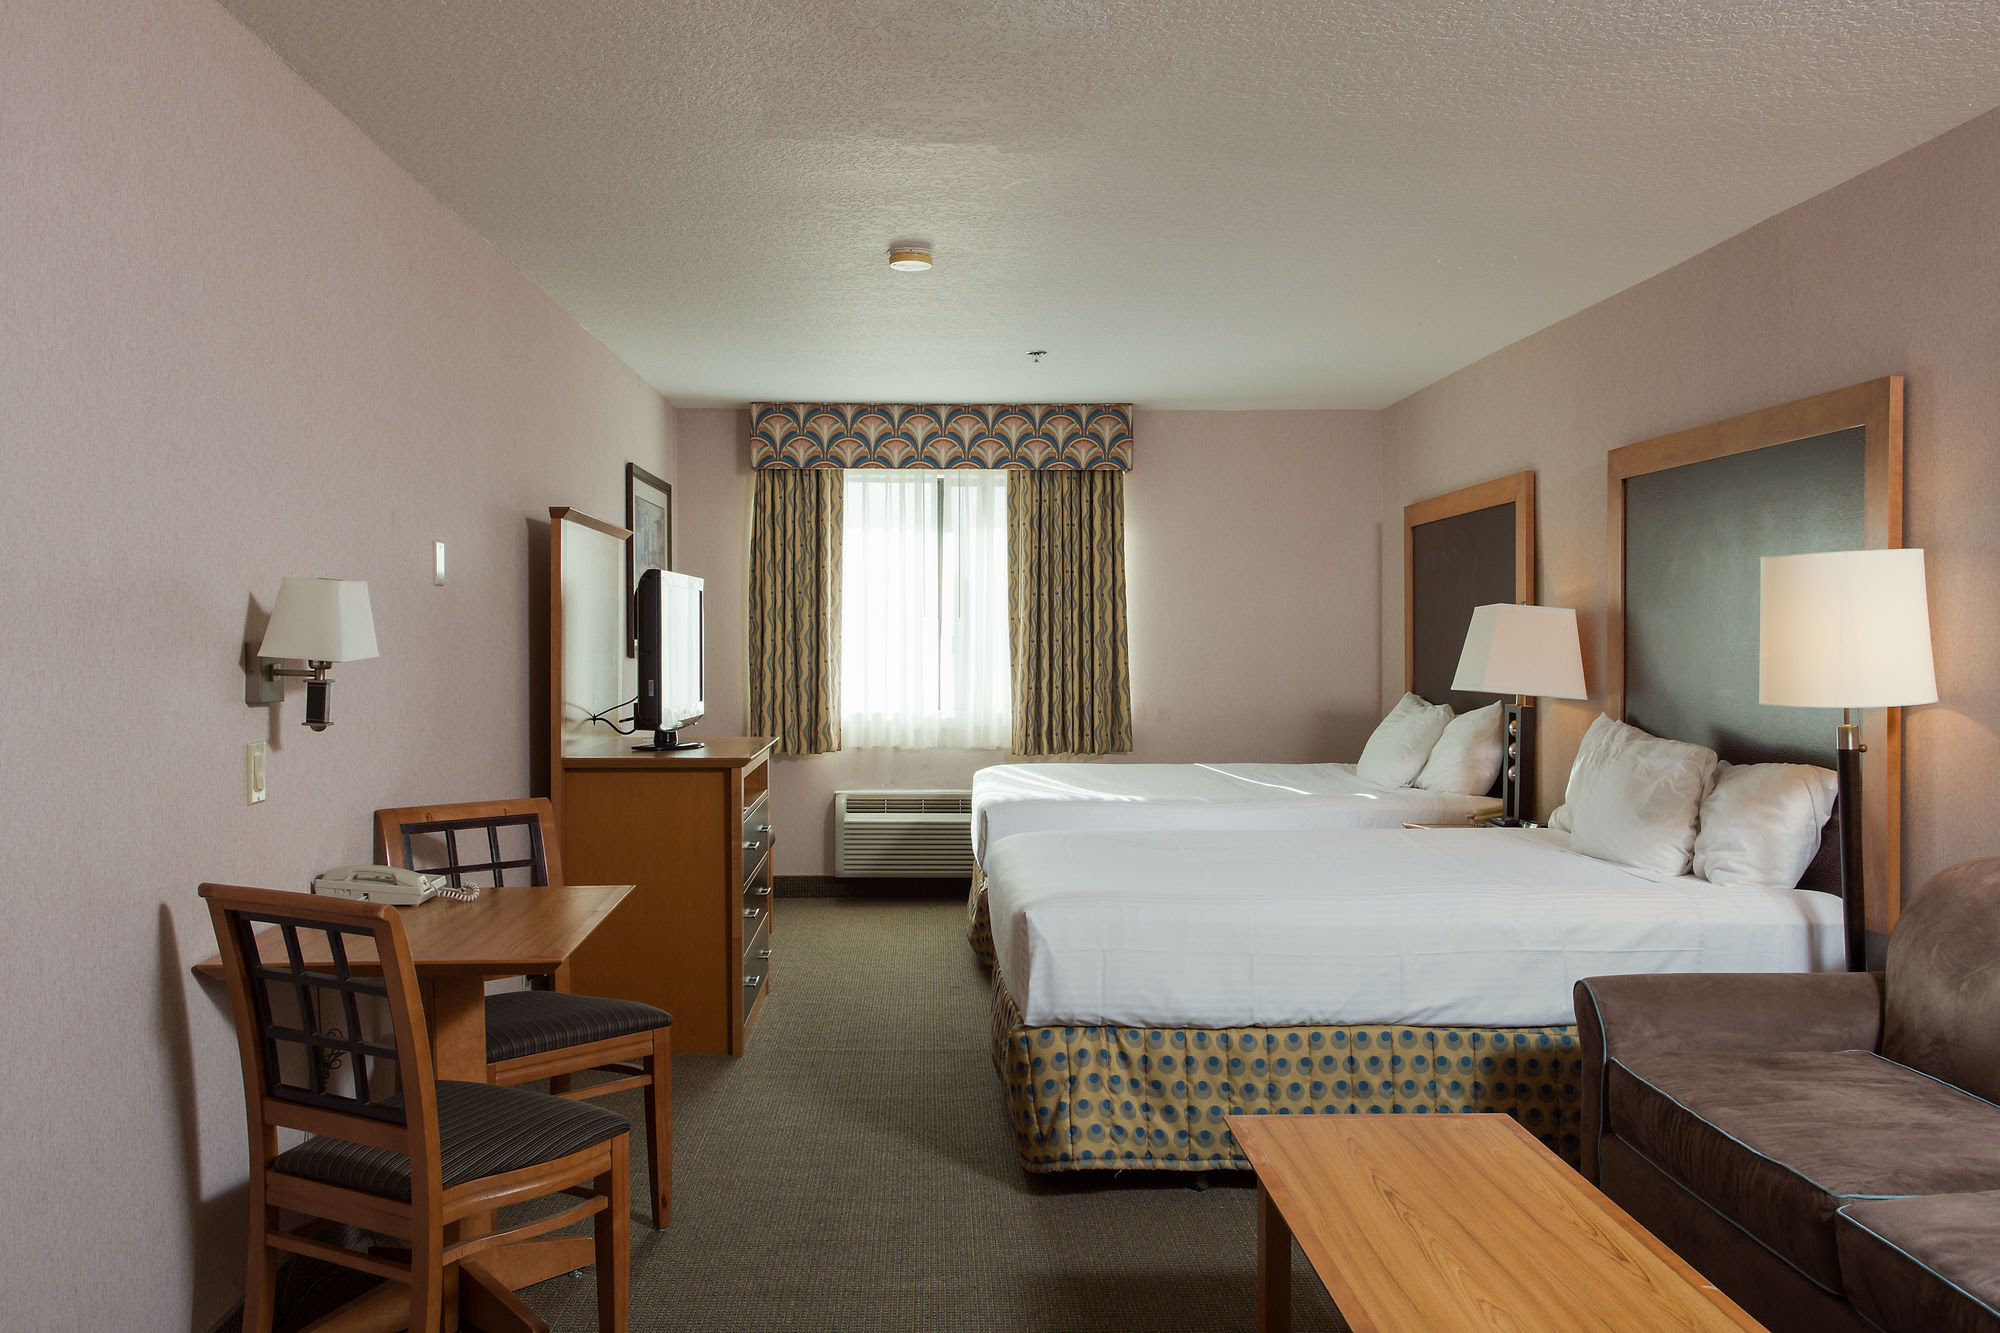 Seaside Hotel Coupons for Seaside, Oregon - FreeHotelCoupons.com